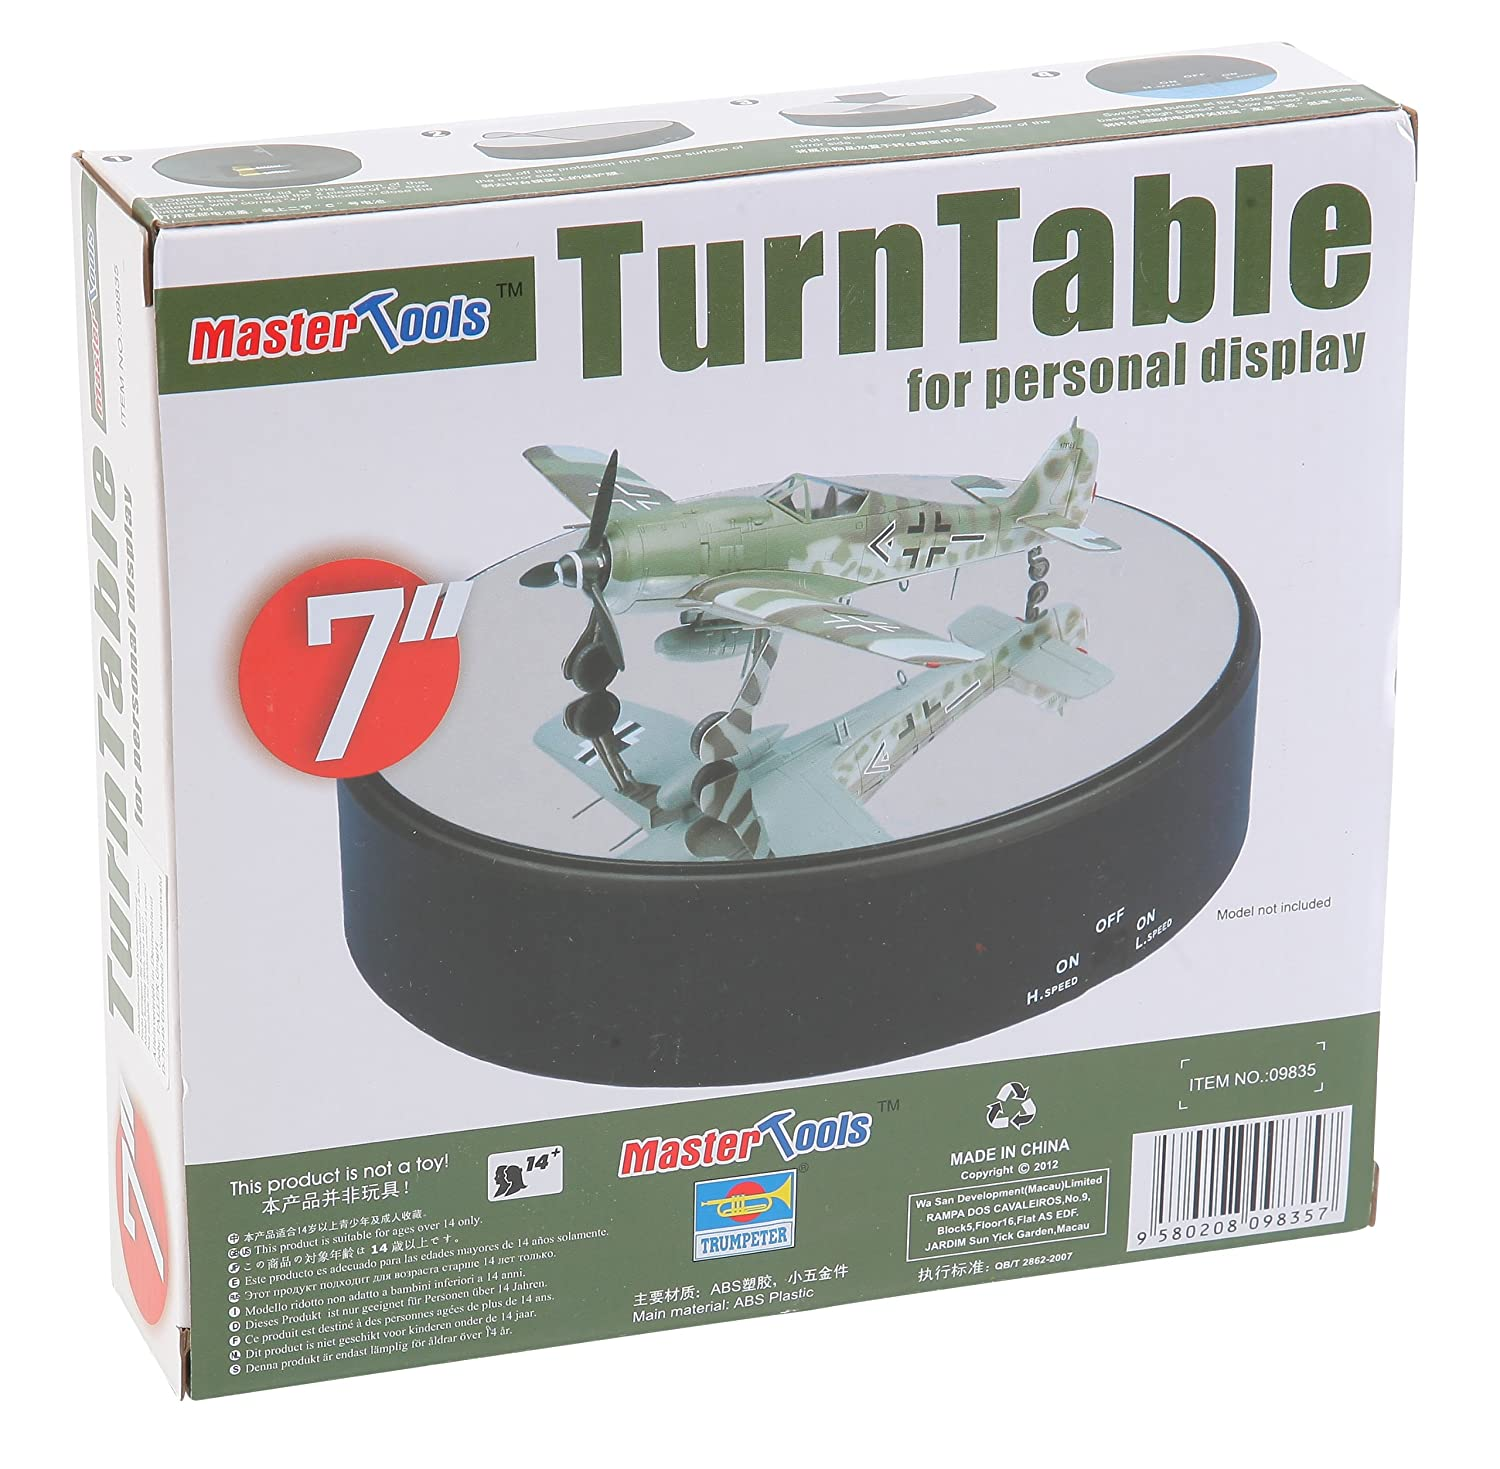 Trumpeter 182 cm x 42 mm Two speed Turntable Display TSM- 9835